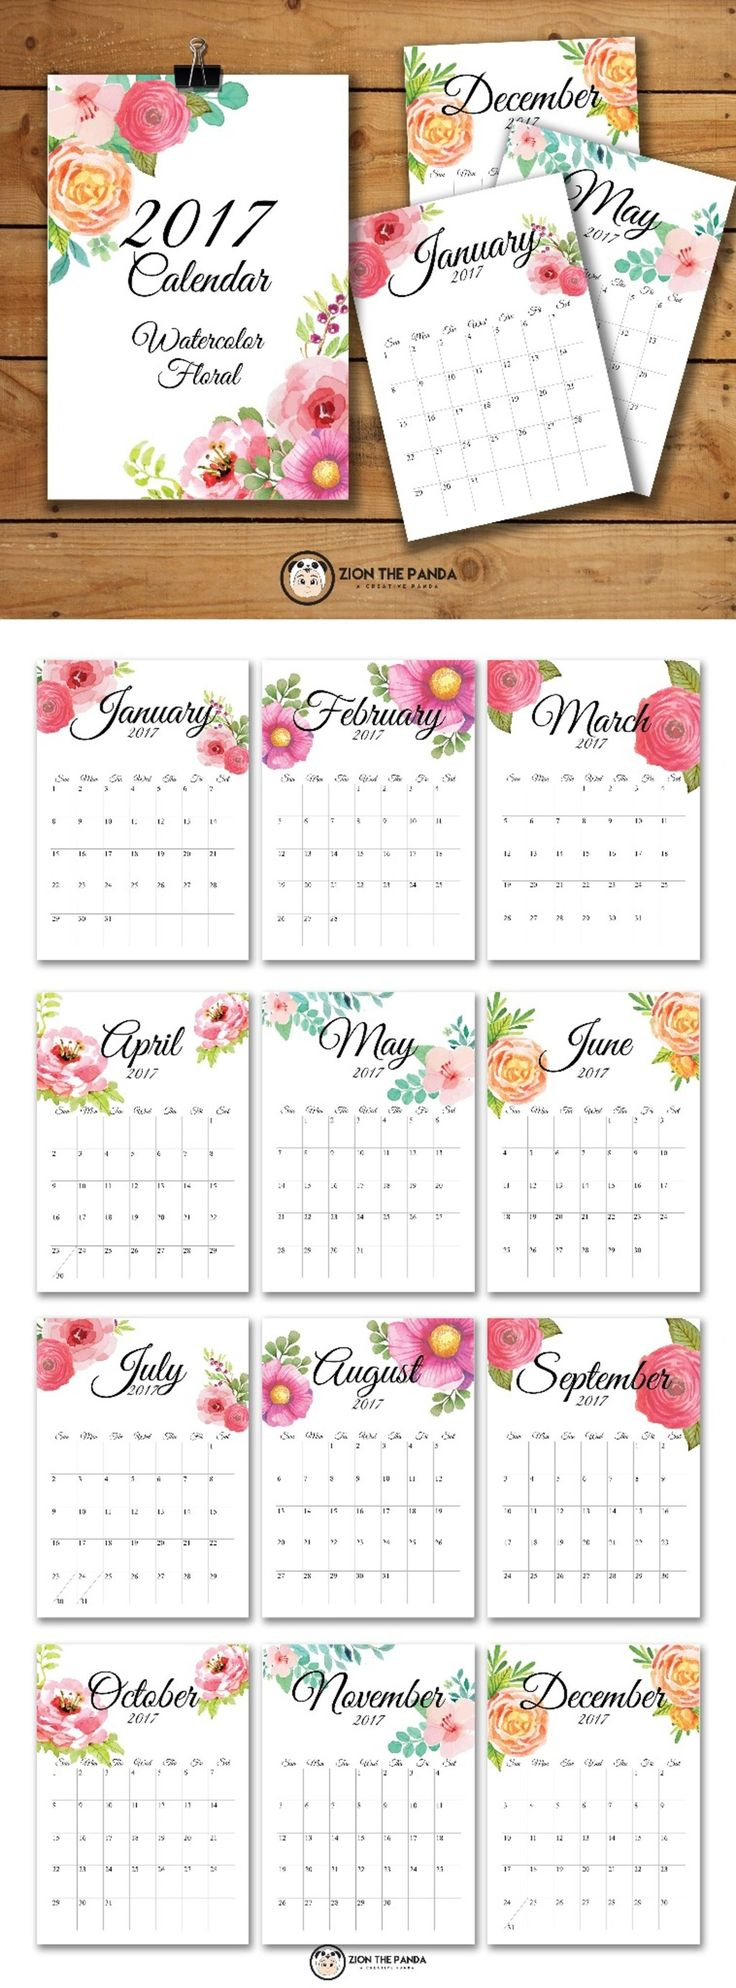 2017 Monthly Calendar - Floral (printable) - Zion The Panda                                                                                                                                                                                 More                                                                                                                                                                                 Mais